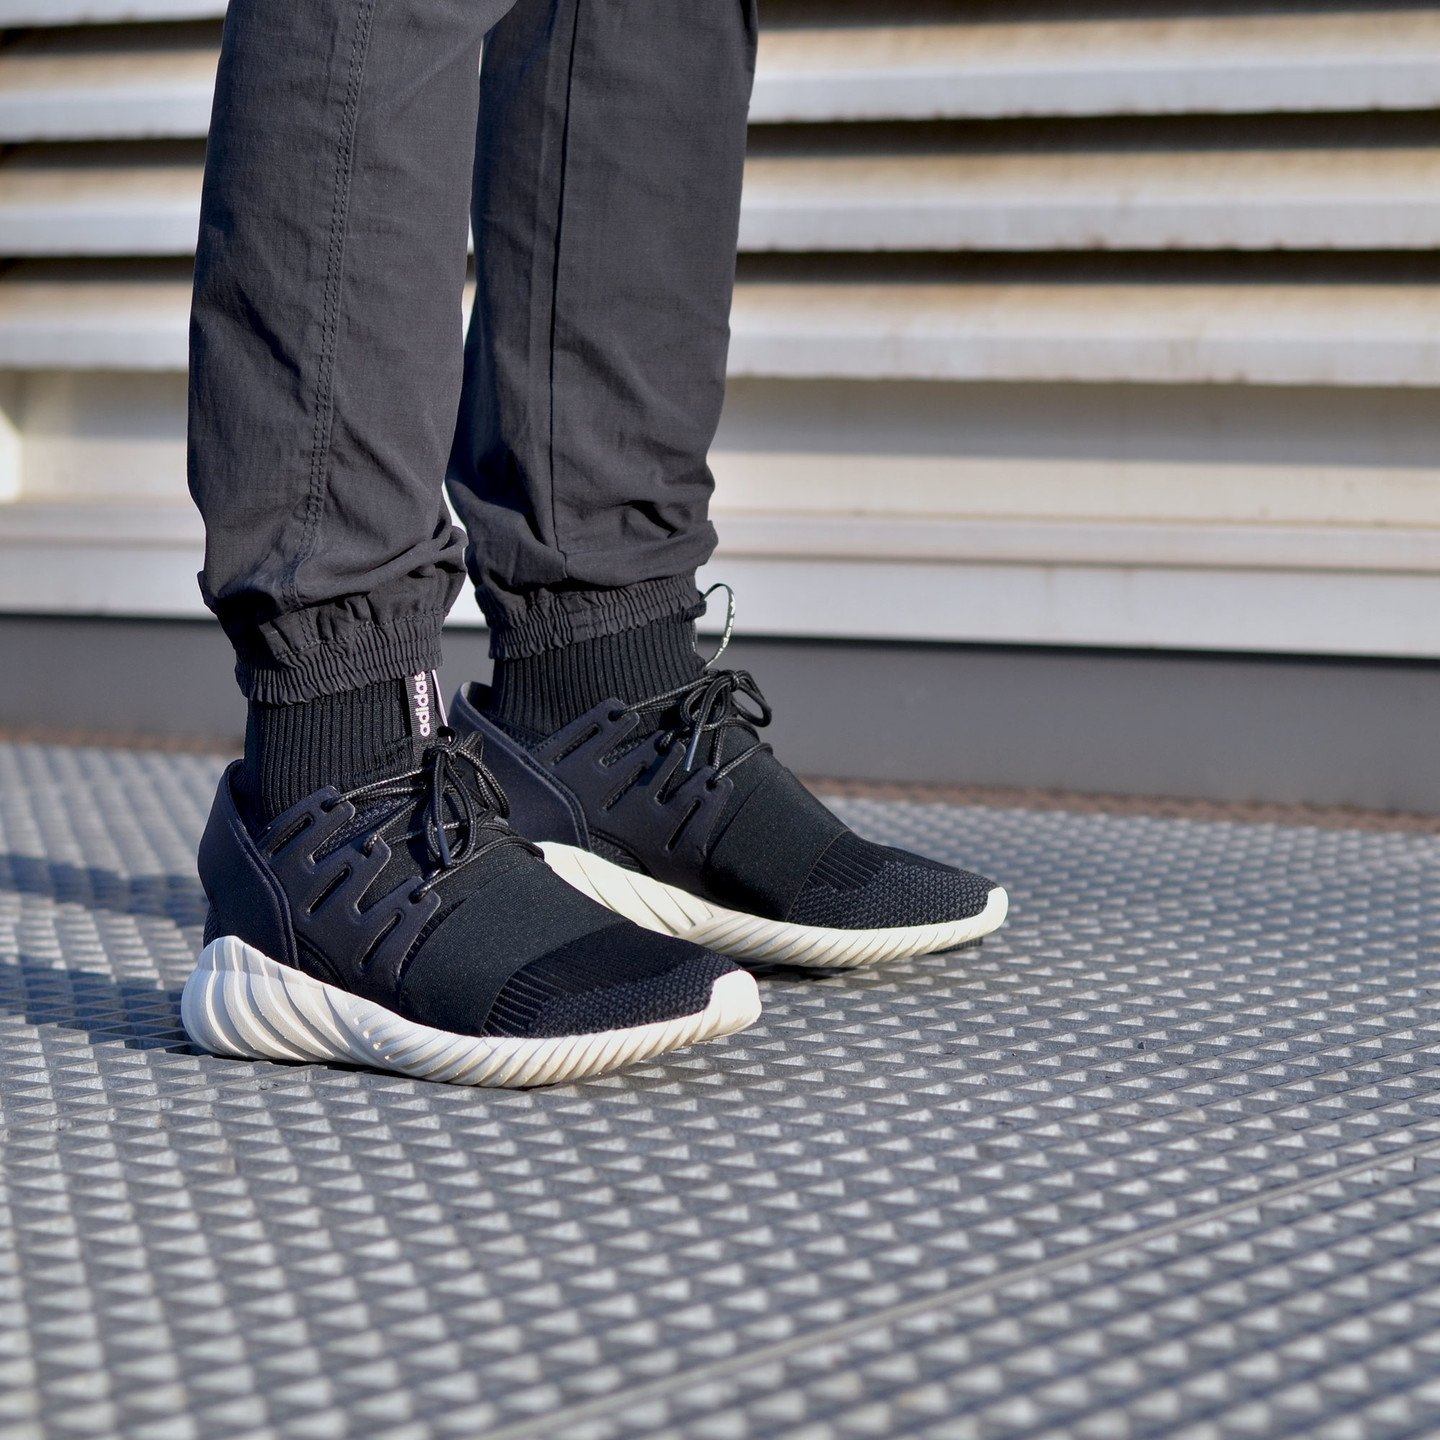 Adidas Tubular Doom Primeknit Black / Cream White S74921-46